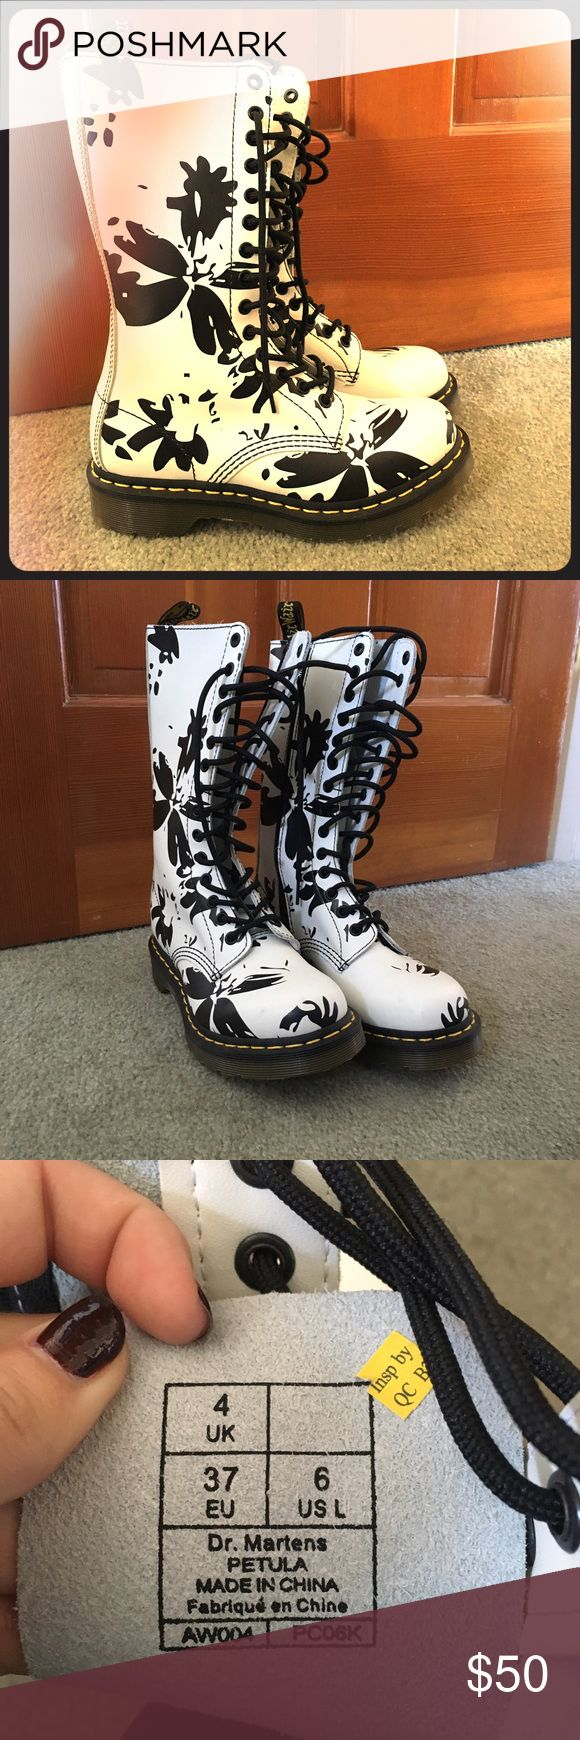 Doc Marten floral lace up boots size 6 NEW So fun! FLORAL black and white ORIGINAL doc marten lace up boots! Doc Marten Shoes Lace Up Boots